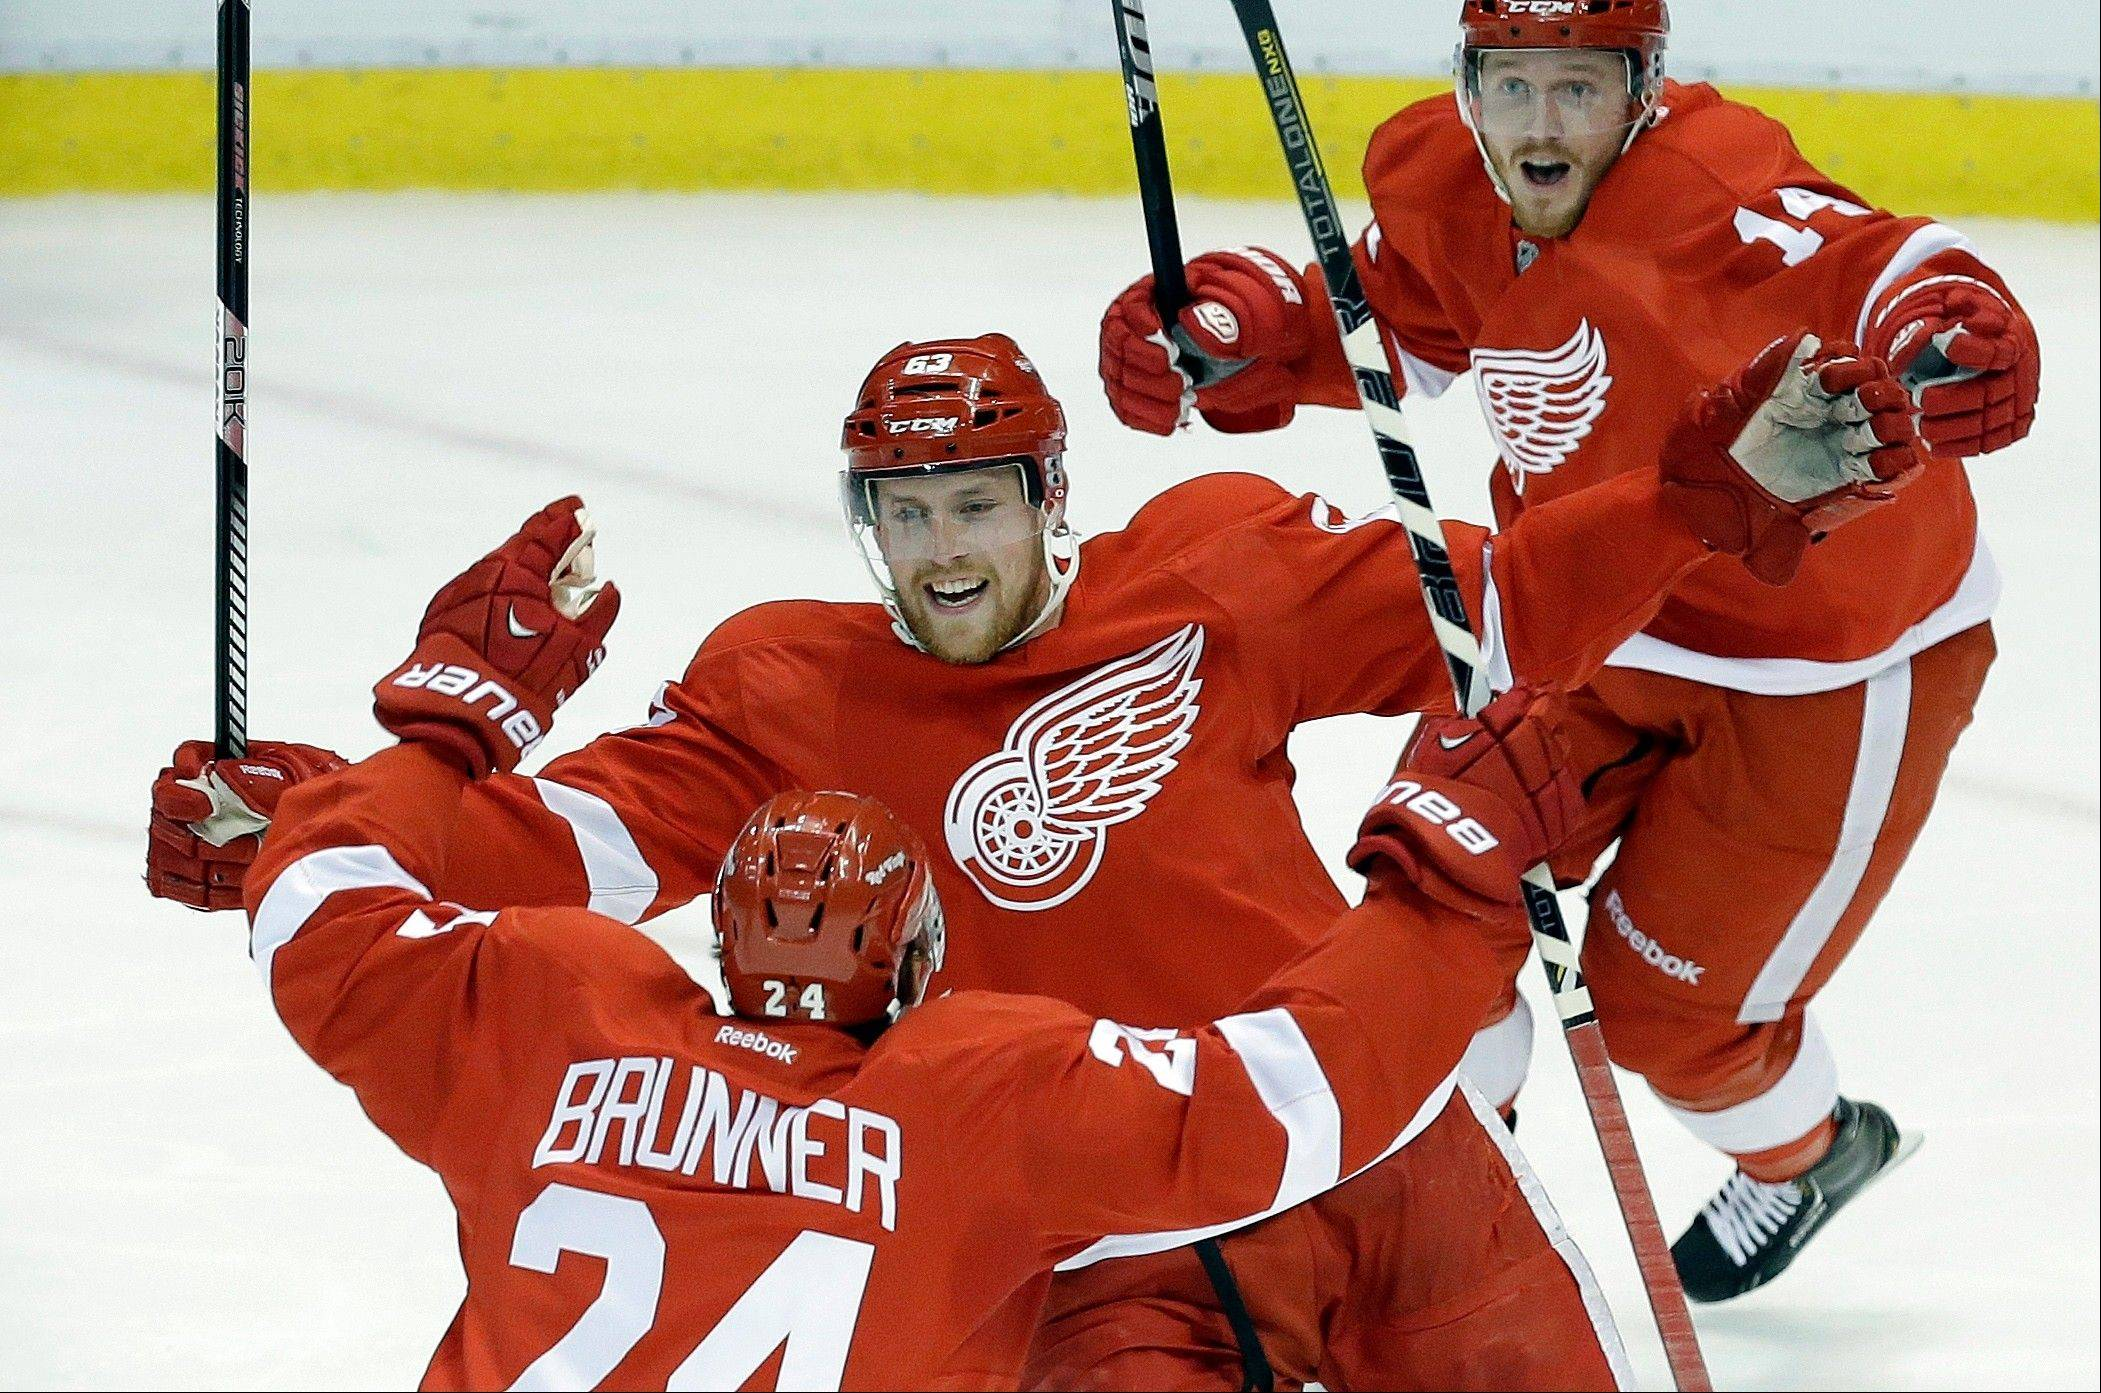 Detroit Red Wings center Joakim Andersson, center, of Sweden, celebrates scoring against the Chicago Blackhawks with Damien Brunner (24), of Switzerland, and Gustav Nyquist (14), of Sweden, during the second period in Game 6 of the Western Conference semifinals in the NHL hockey Stanley Cup playoffs in Detroit, Monday, May 27, 2013.